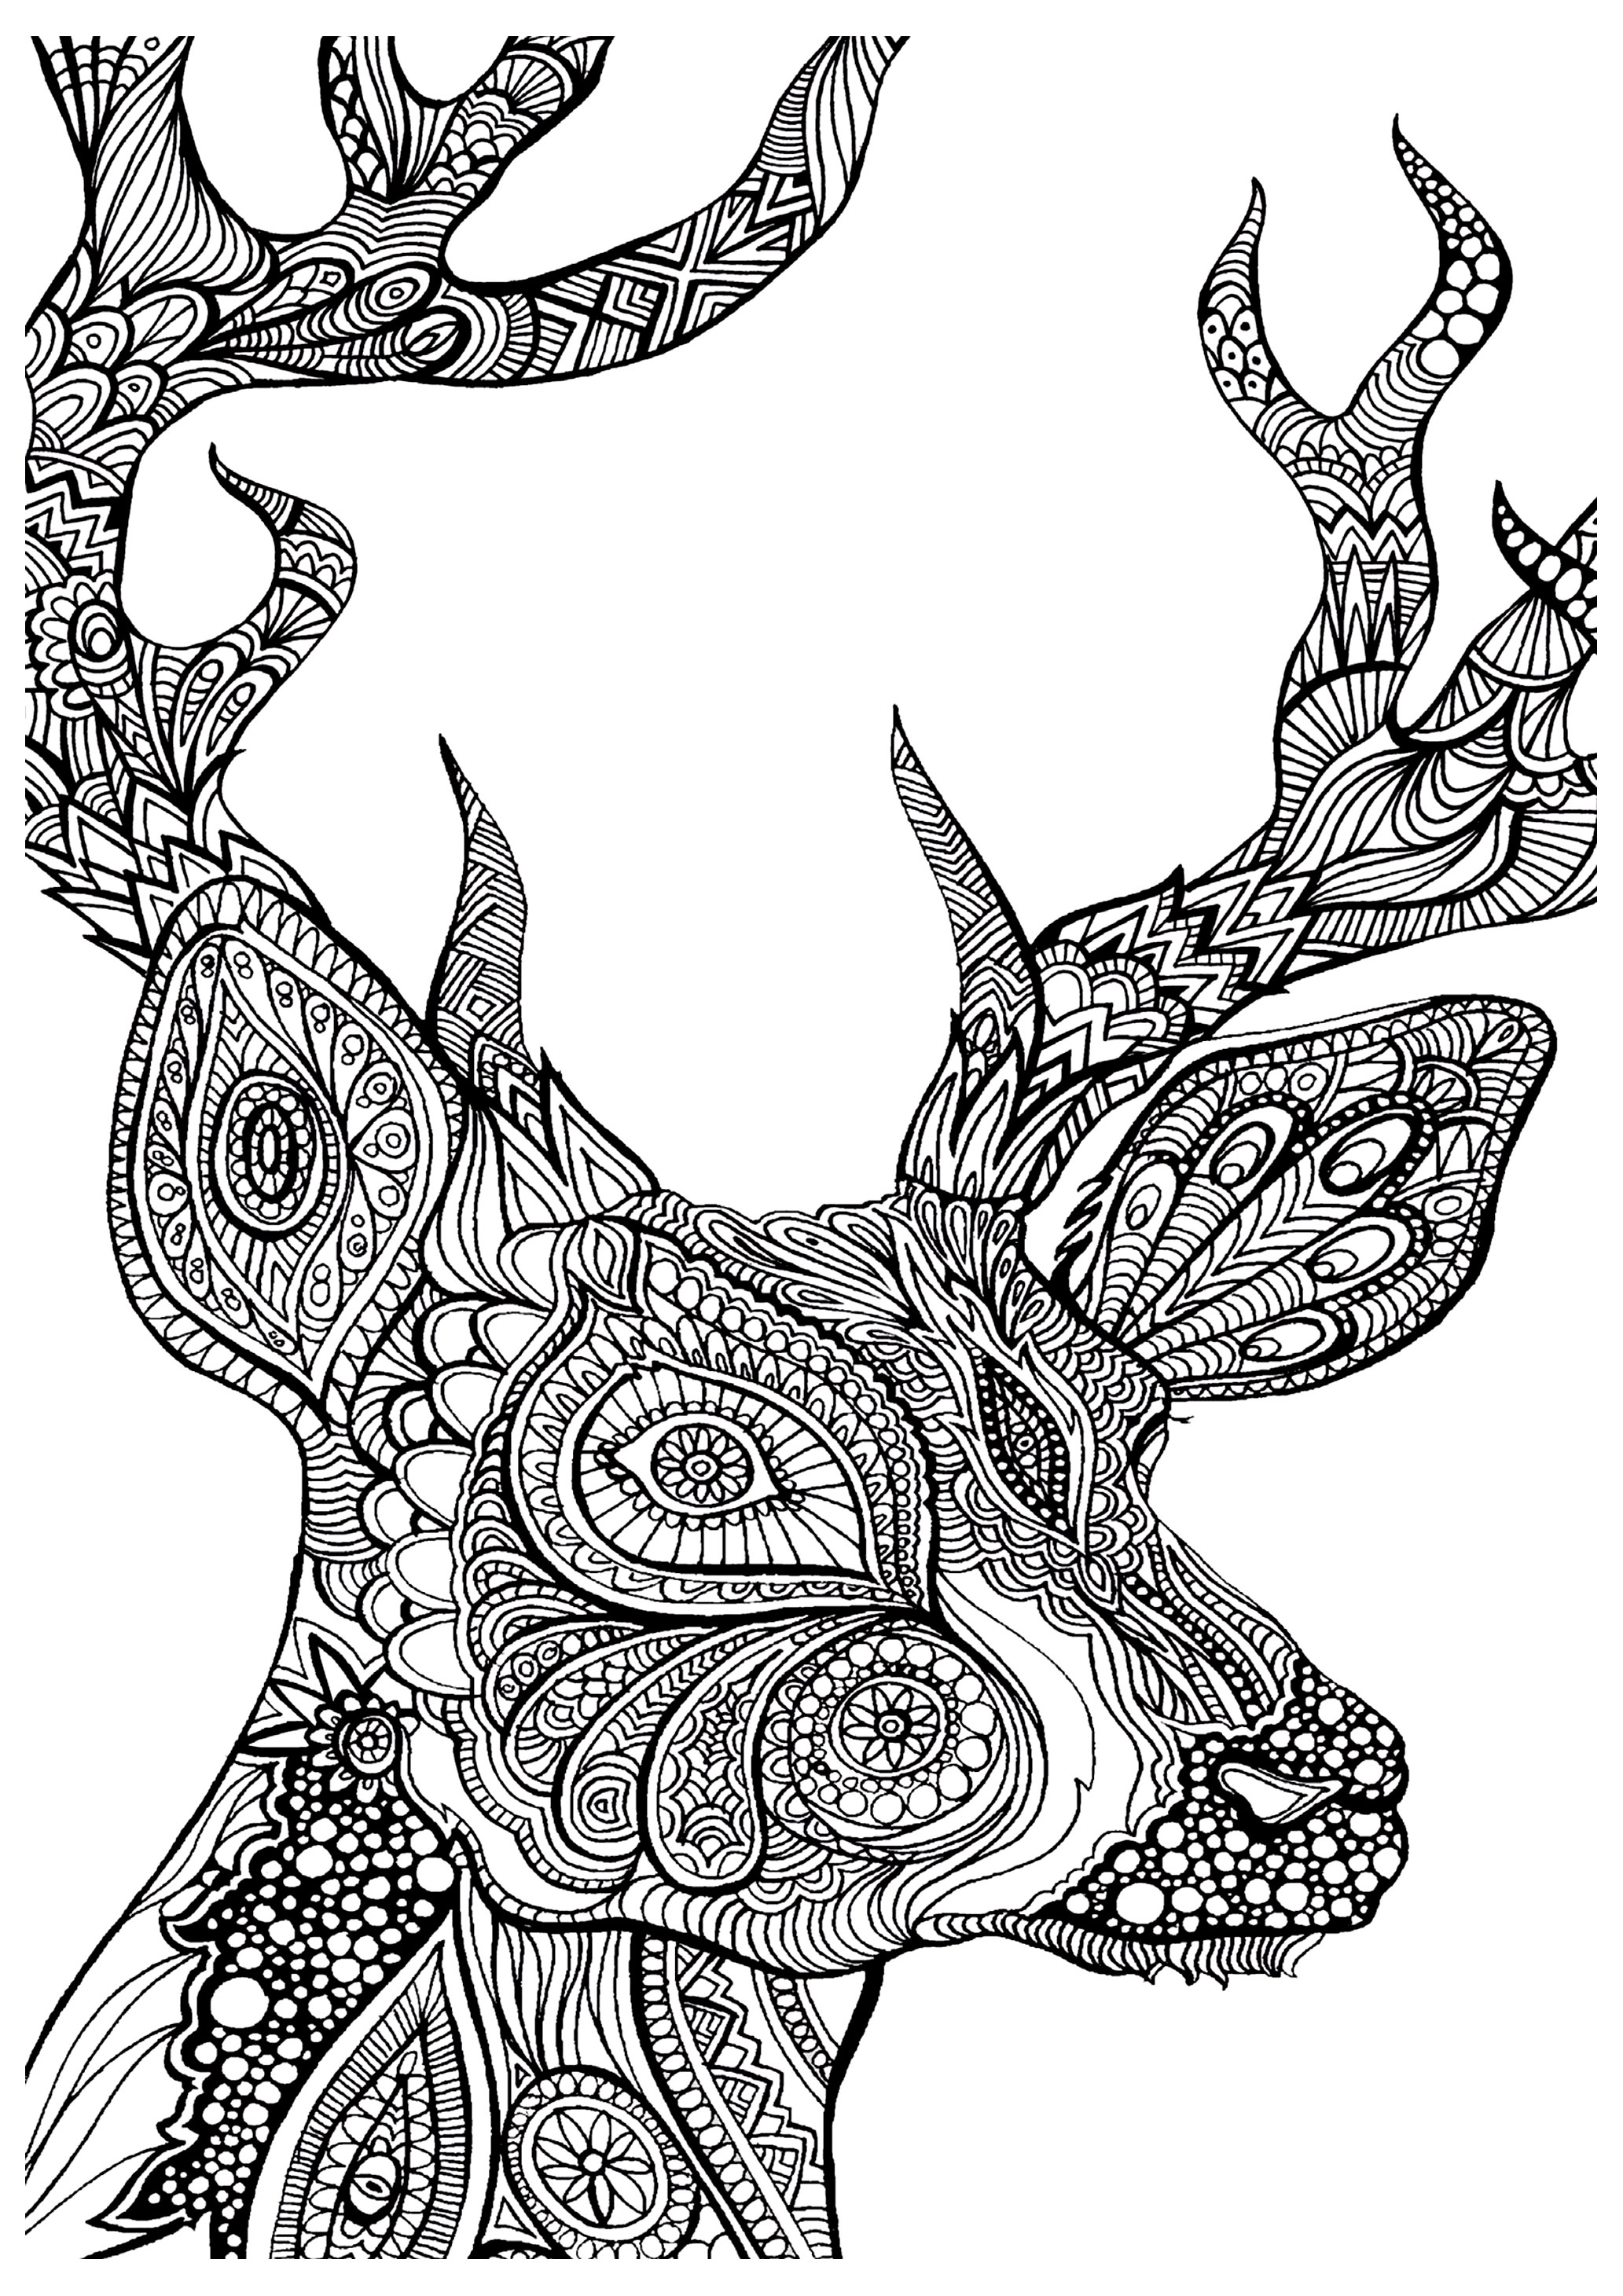 19 Of The Best Adult Colouring Pages Free Printables For